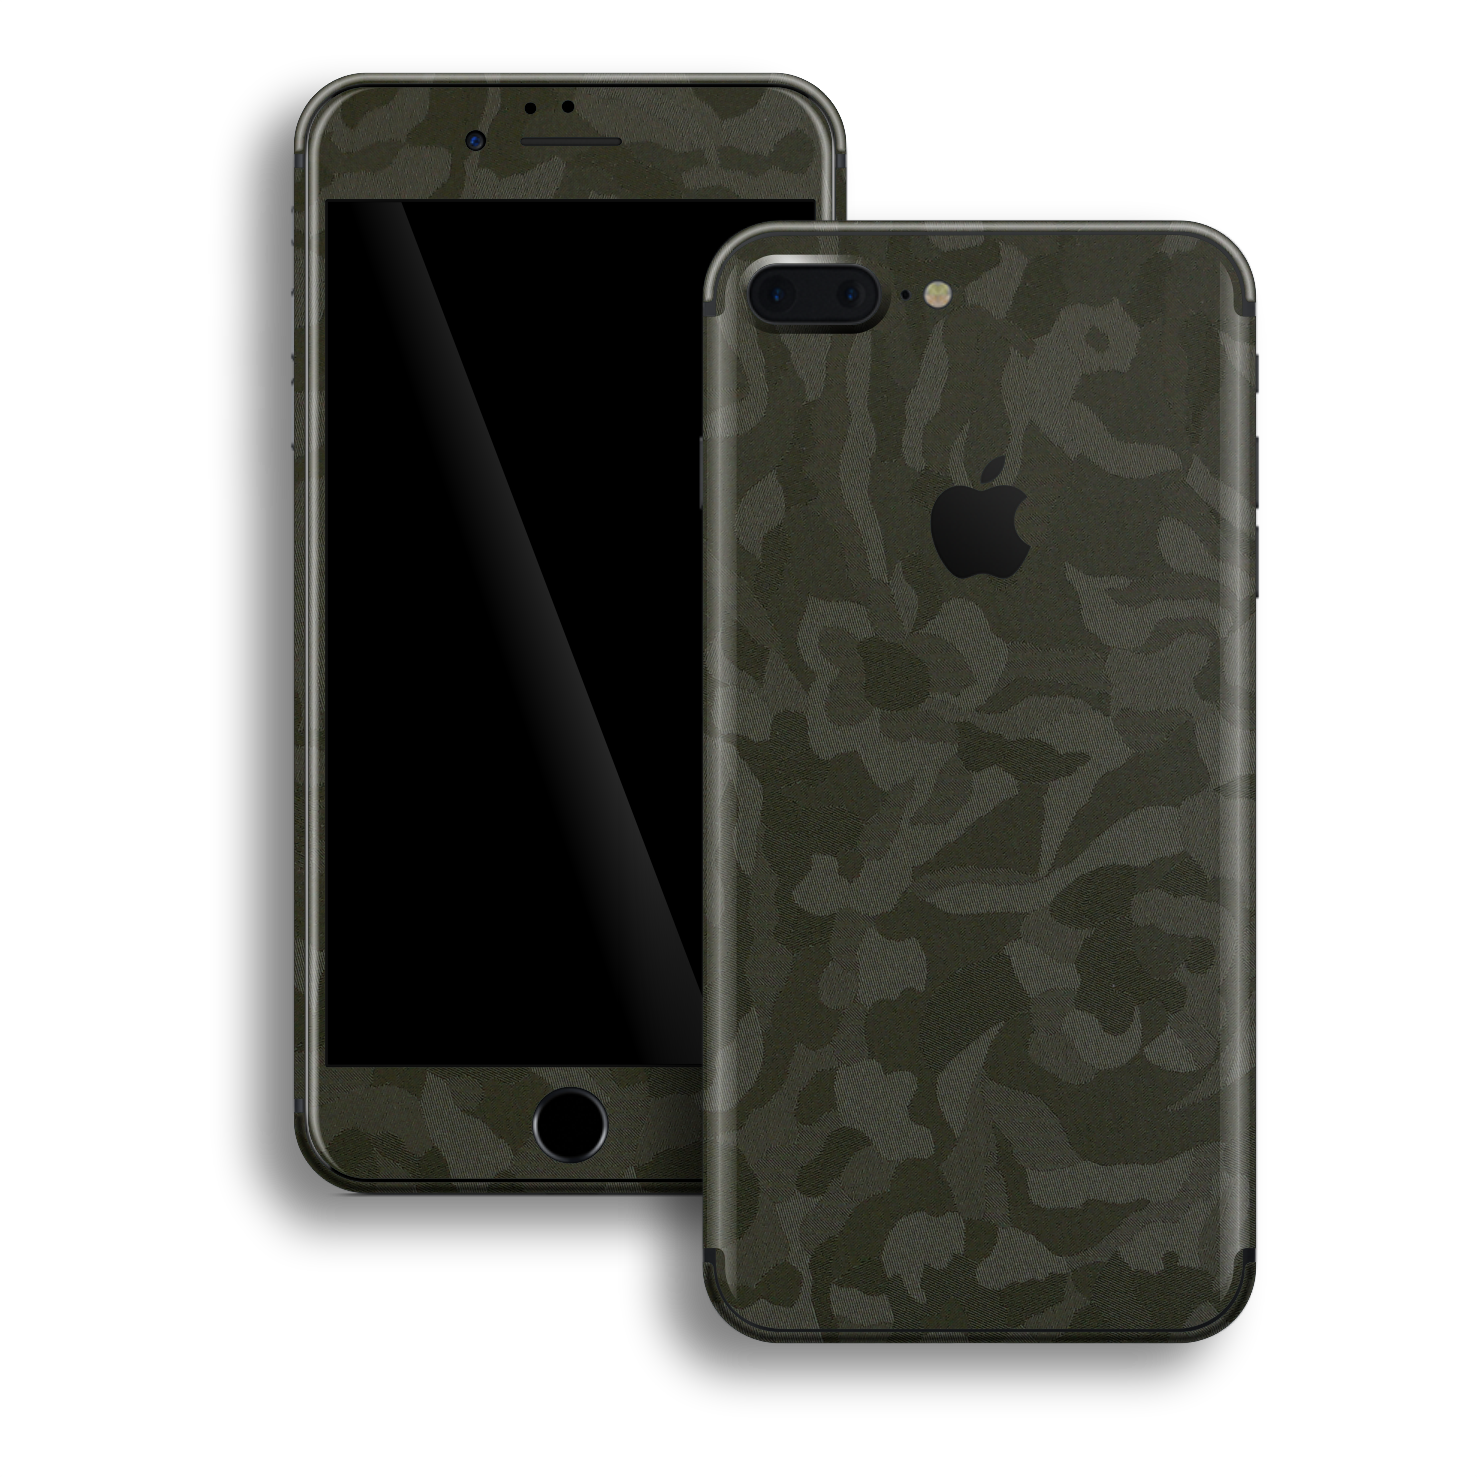 iPhone 8 PLUS Luxuria Green 3D Textured Camo Camouflage Skin Wrap Decal Protector | EasySkinz